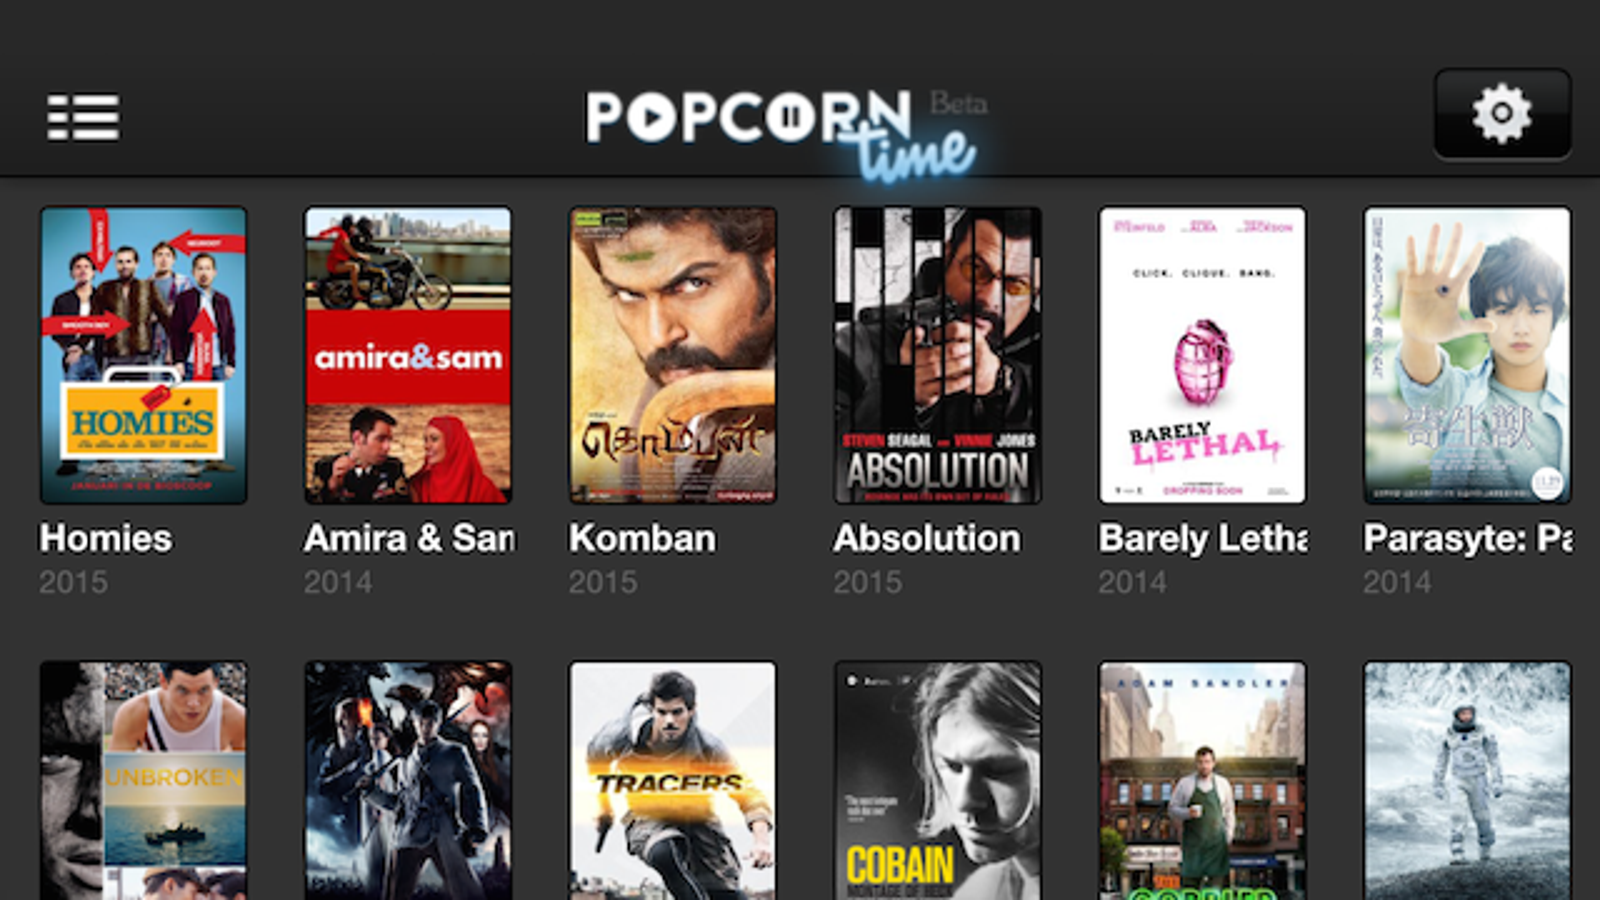 You Can Now Install Popcorn Time for iOS from Your Mac